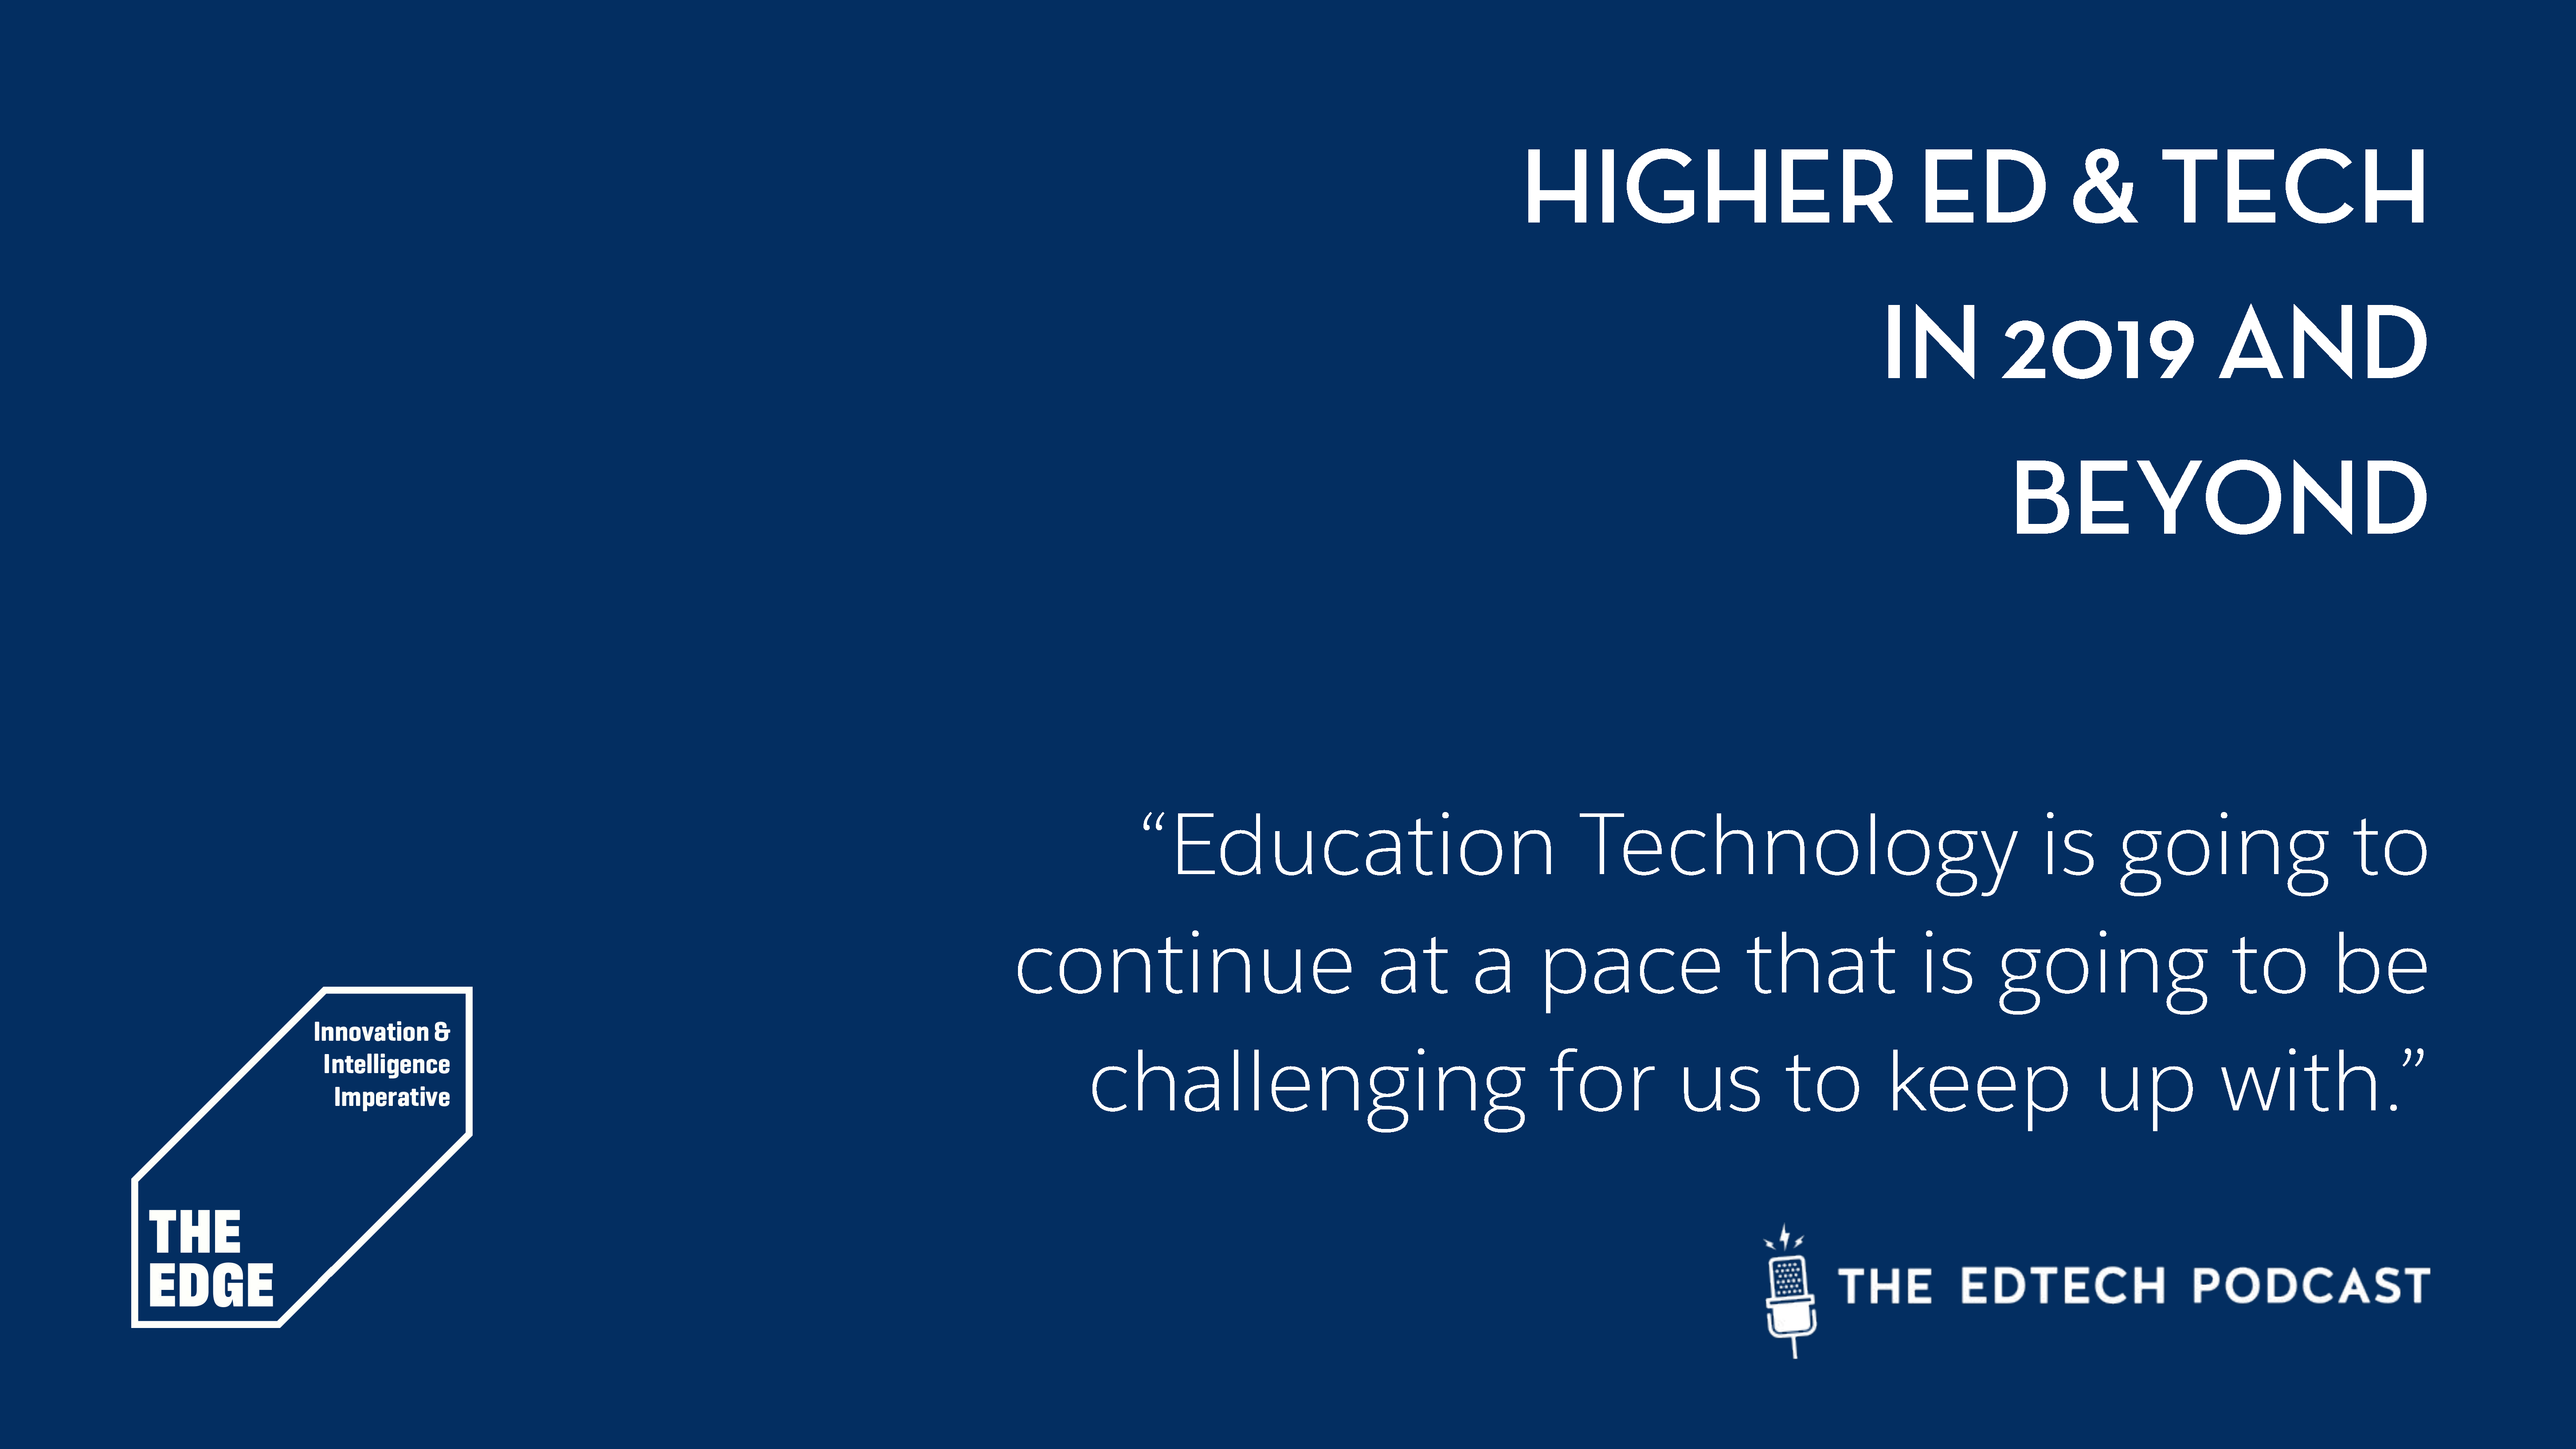 Episode 4 | HigherEd & Tech in 2019 and Beyond